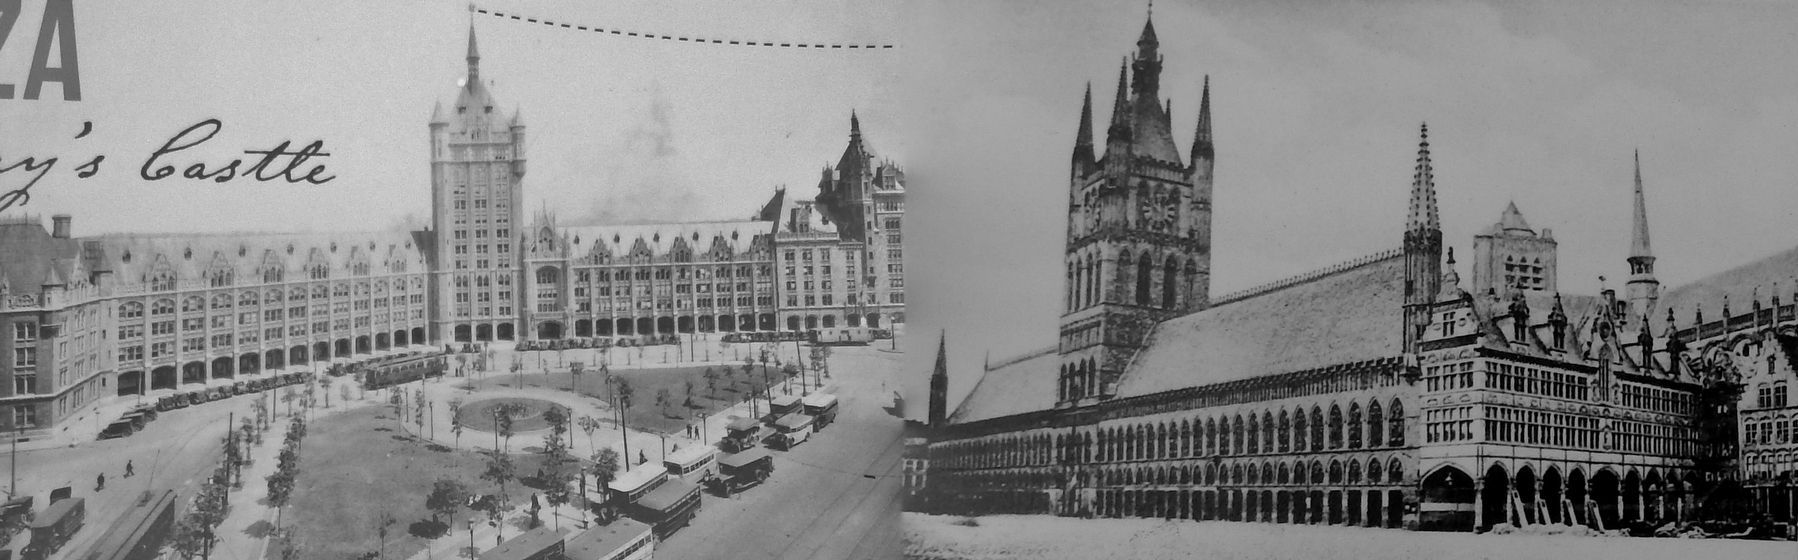 SUNY Plaza's design was inspired by the Cloth Guild Hall in Ypres, Belgium, completed in 1304</i> image. Click for full size.